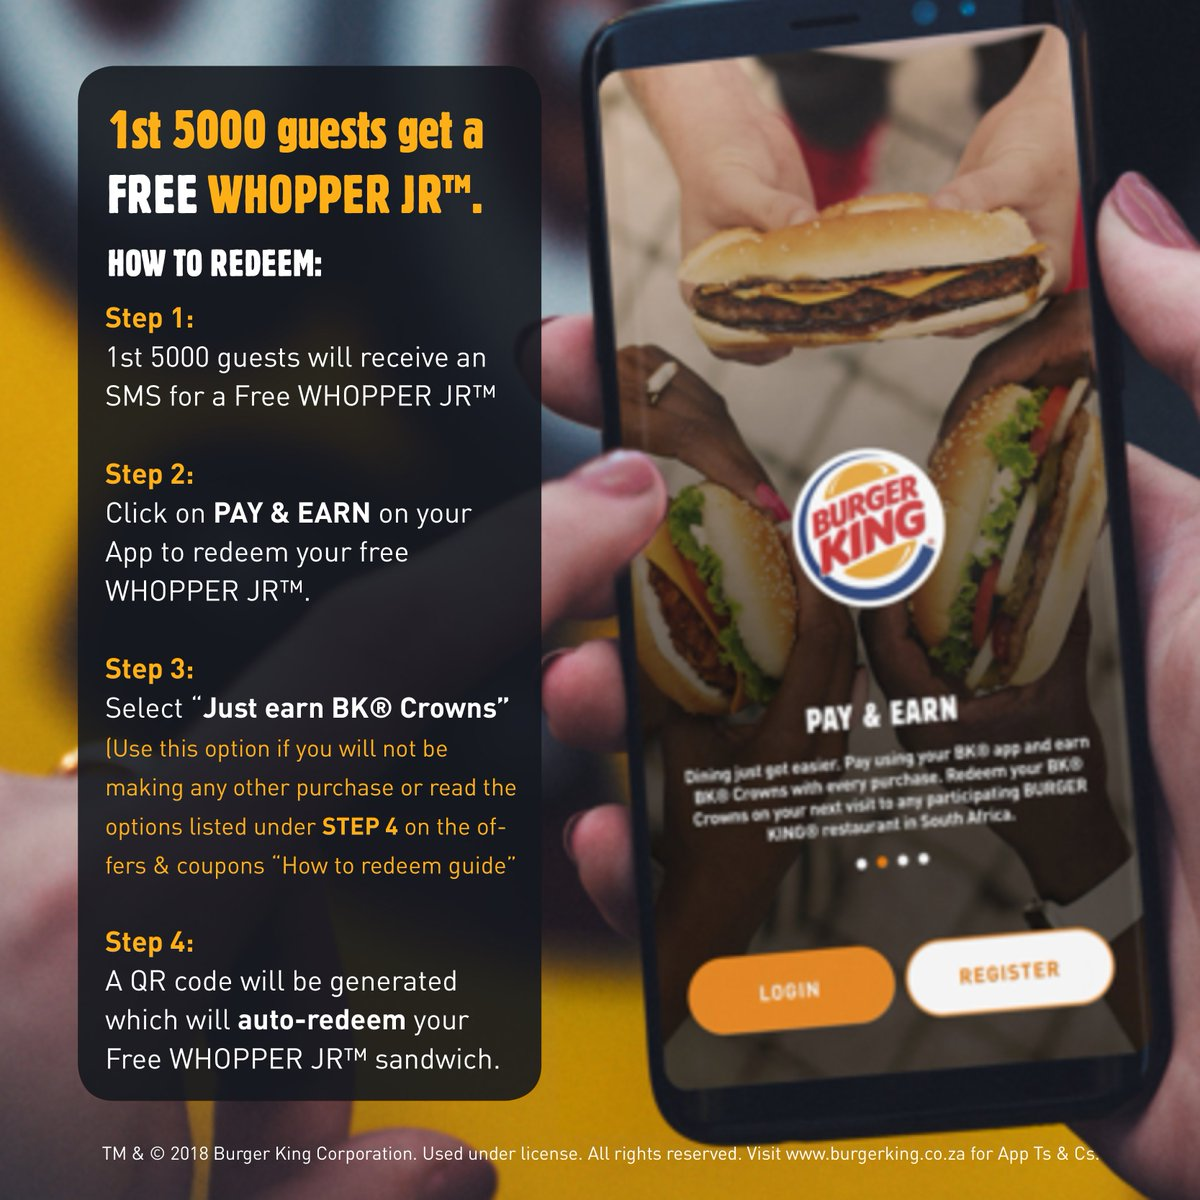 Burger King South Africa On Twitter Google Play Store Https T Co Rztjmeqpku Apple Store Https T Co Ojid4vfbjd Download The Bk App And Start Saving Free Whopper Jr For The 1st 5000 Guests Ts Cs Apply